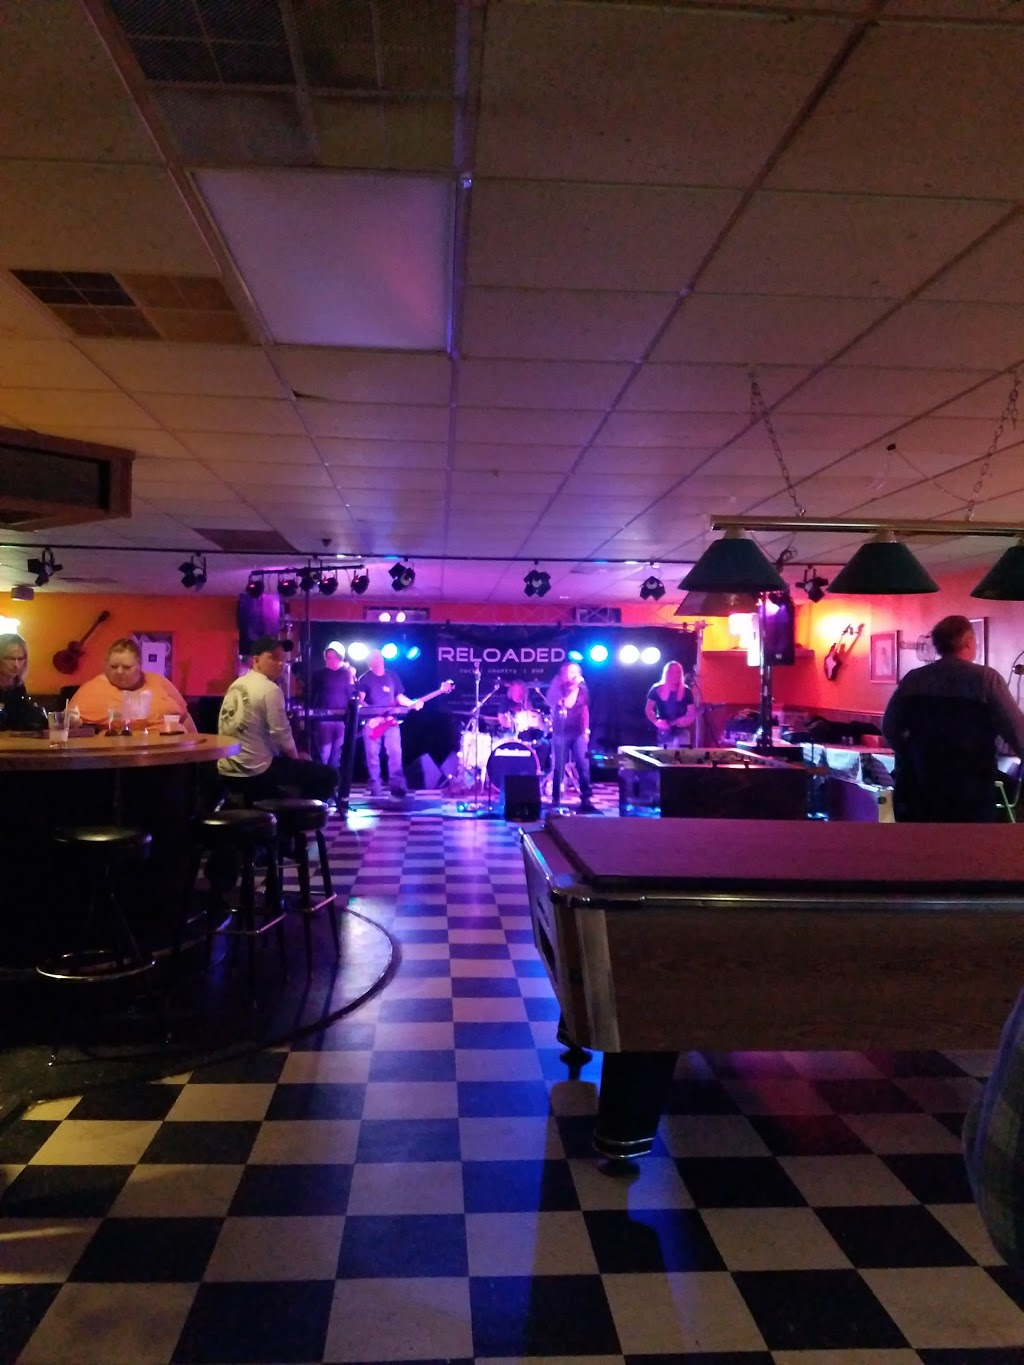 Schwoeglers Sugar River Lanes - bowling alley  | Photo 2 of 10 | Address: 807 River St, Belleville, WI 53508, USA | Phone: (608) 424-3774